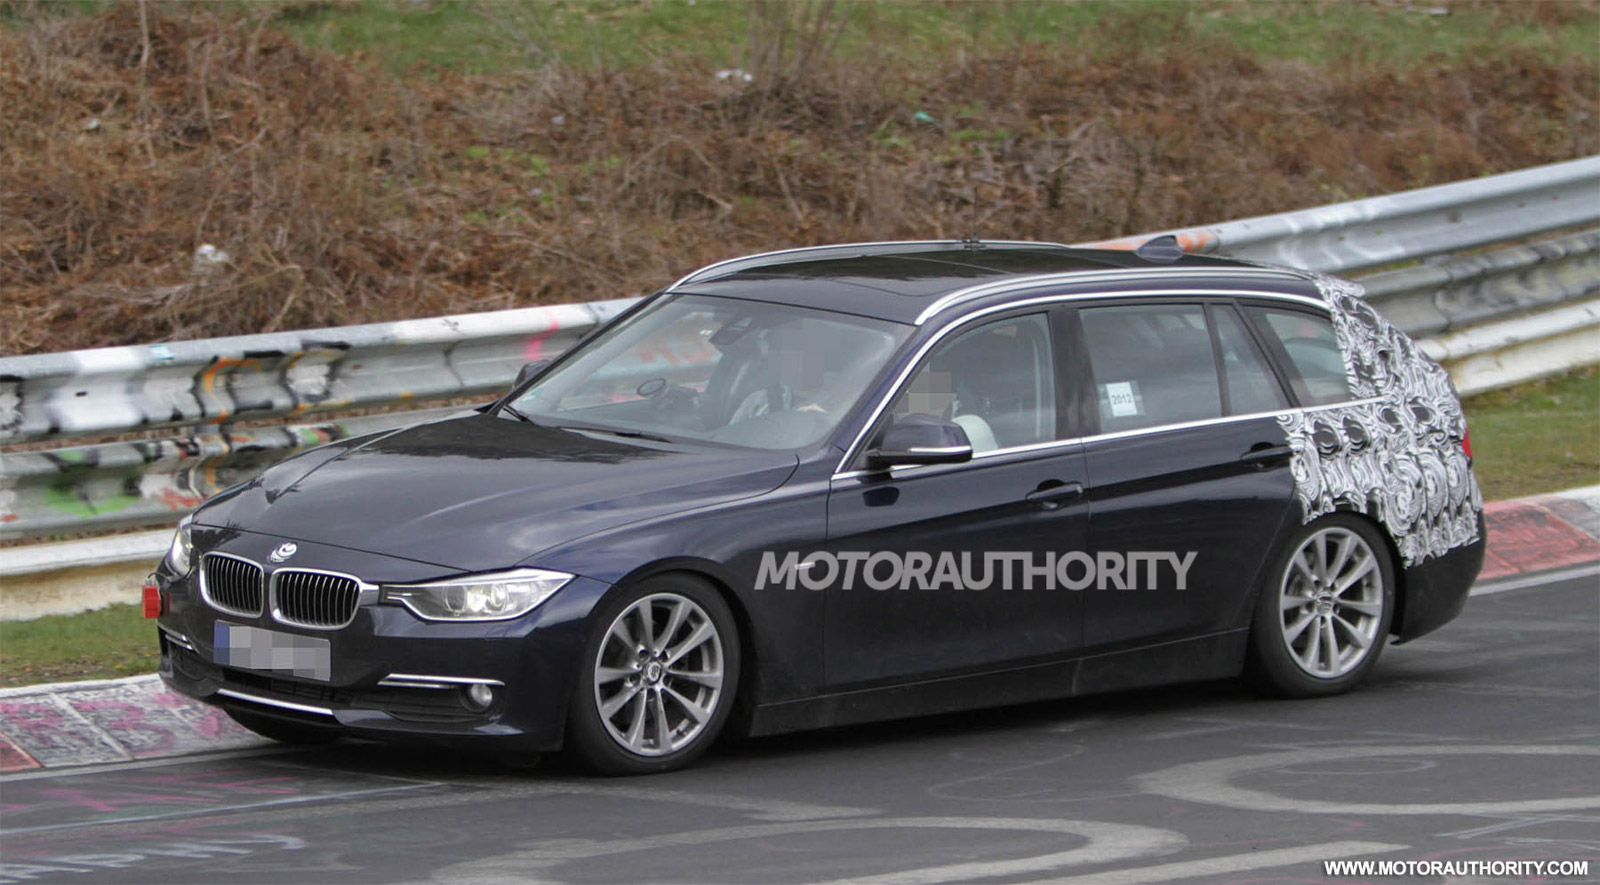 2013 BMW 3 Series Touring Spy Shots